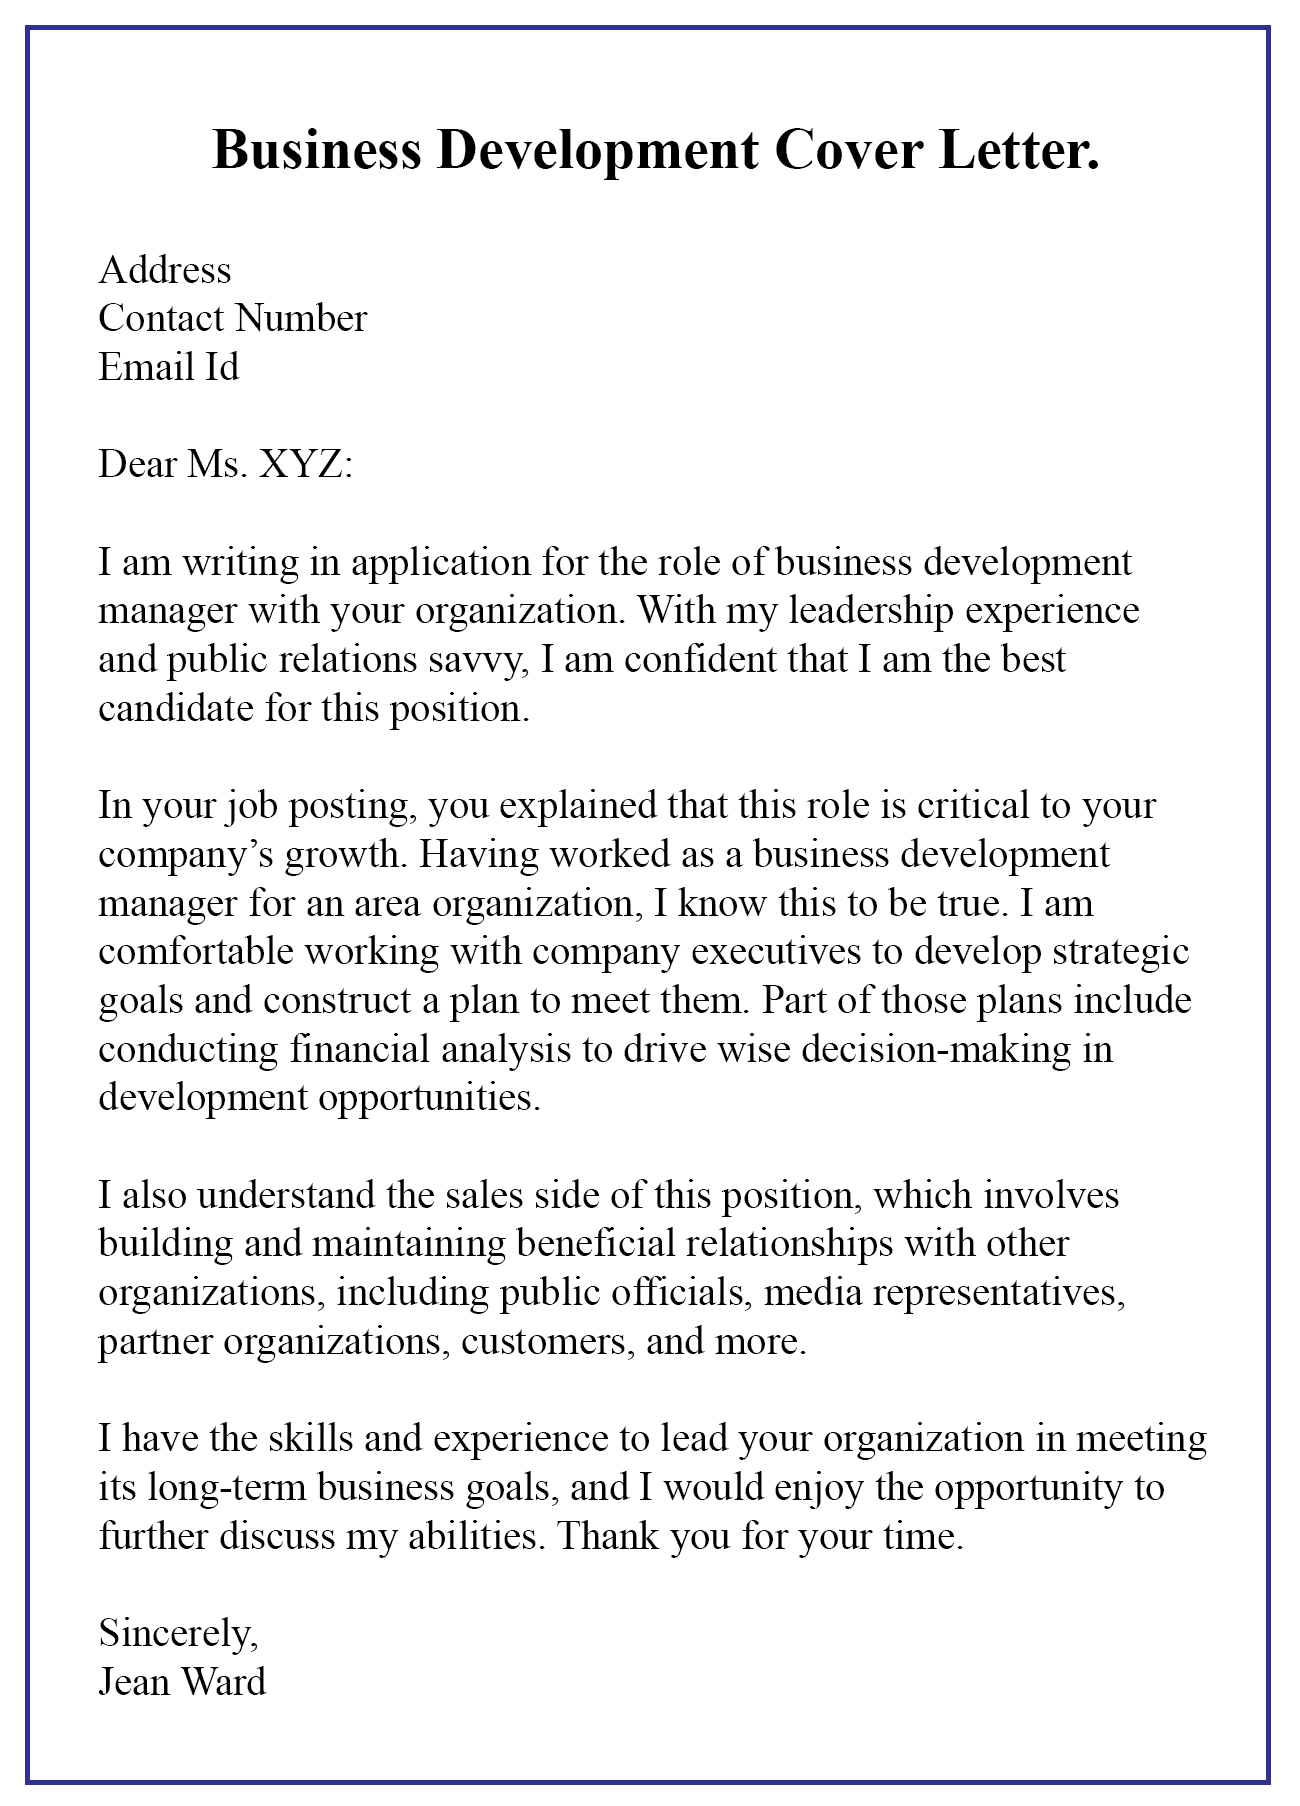 Business Development Letter